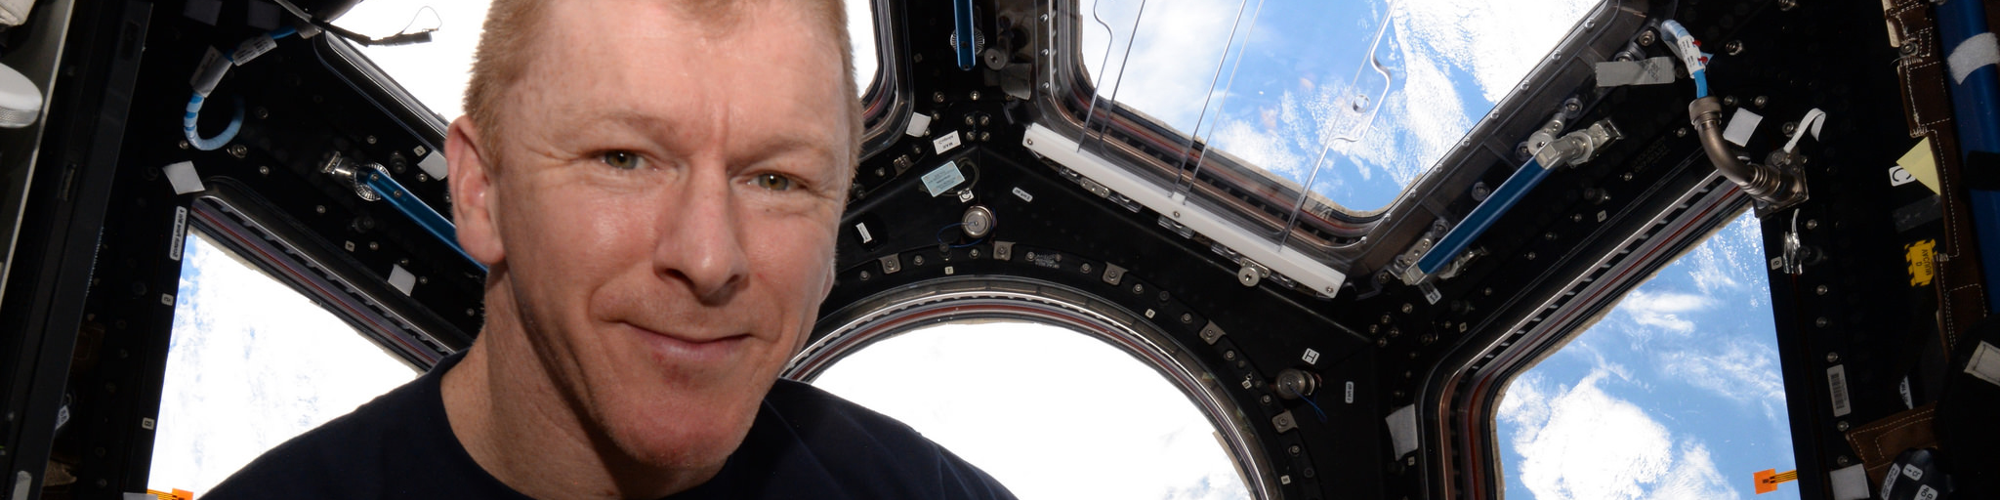 ESA astronaut Tim to talk to Portsmouth public at event hosted by ICG